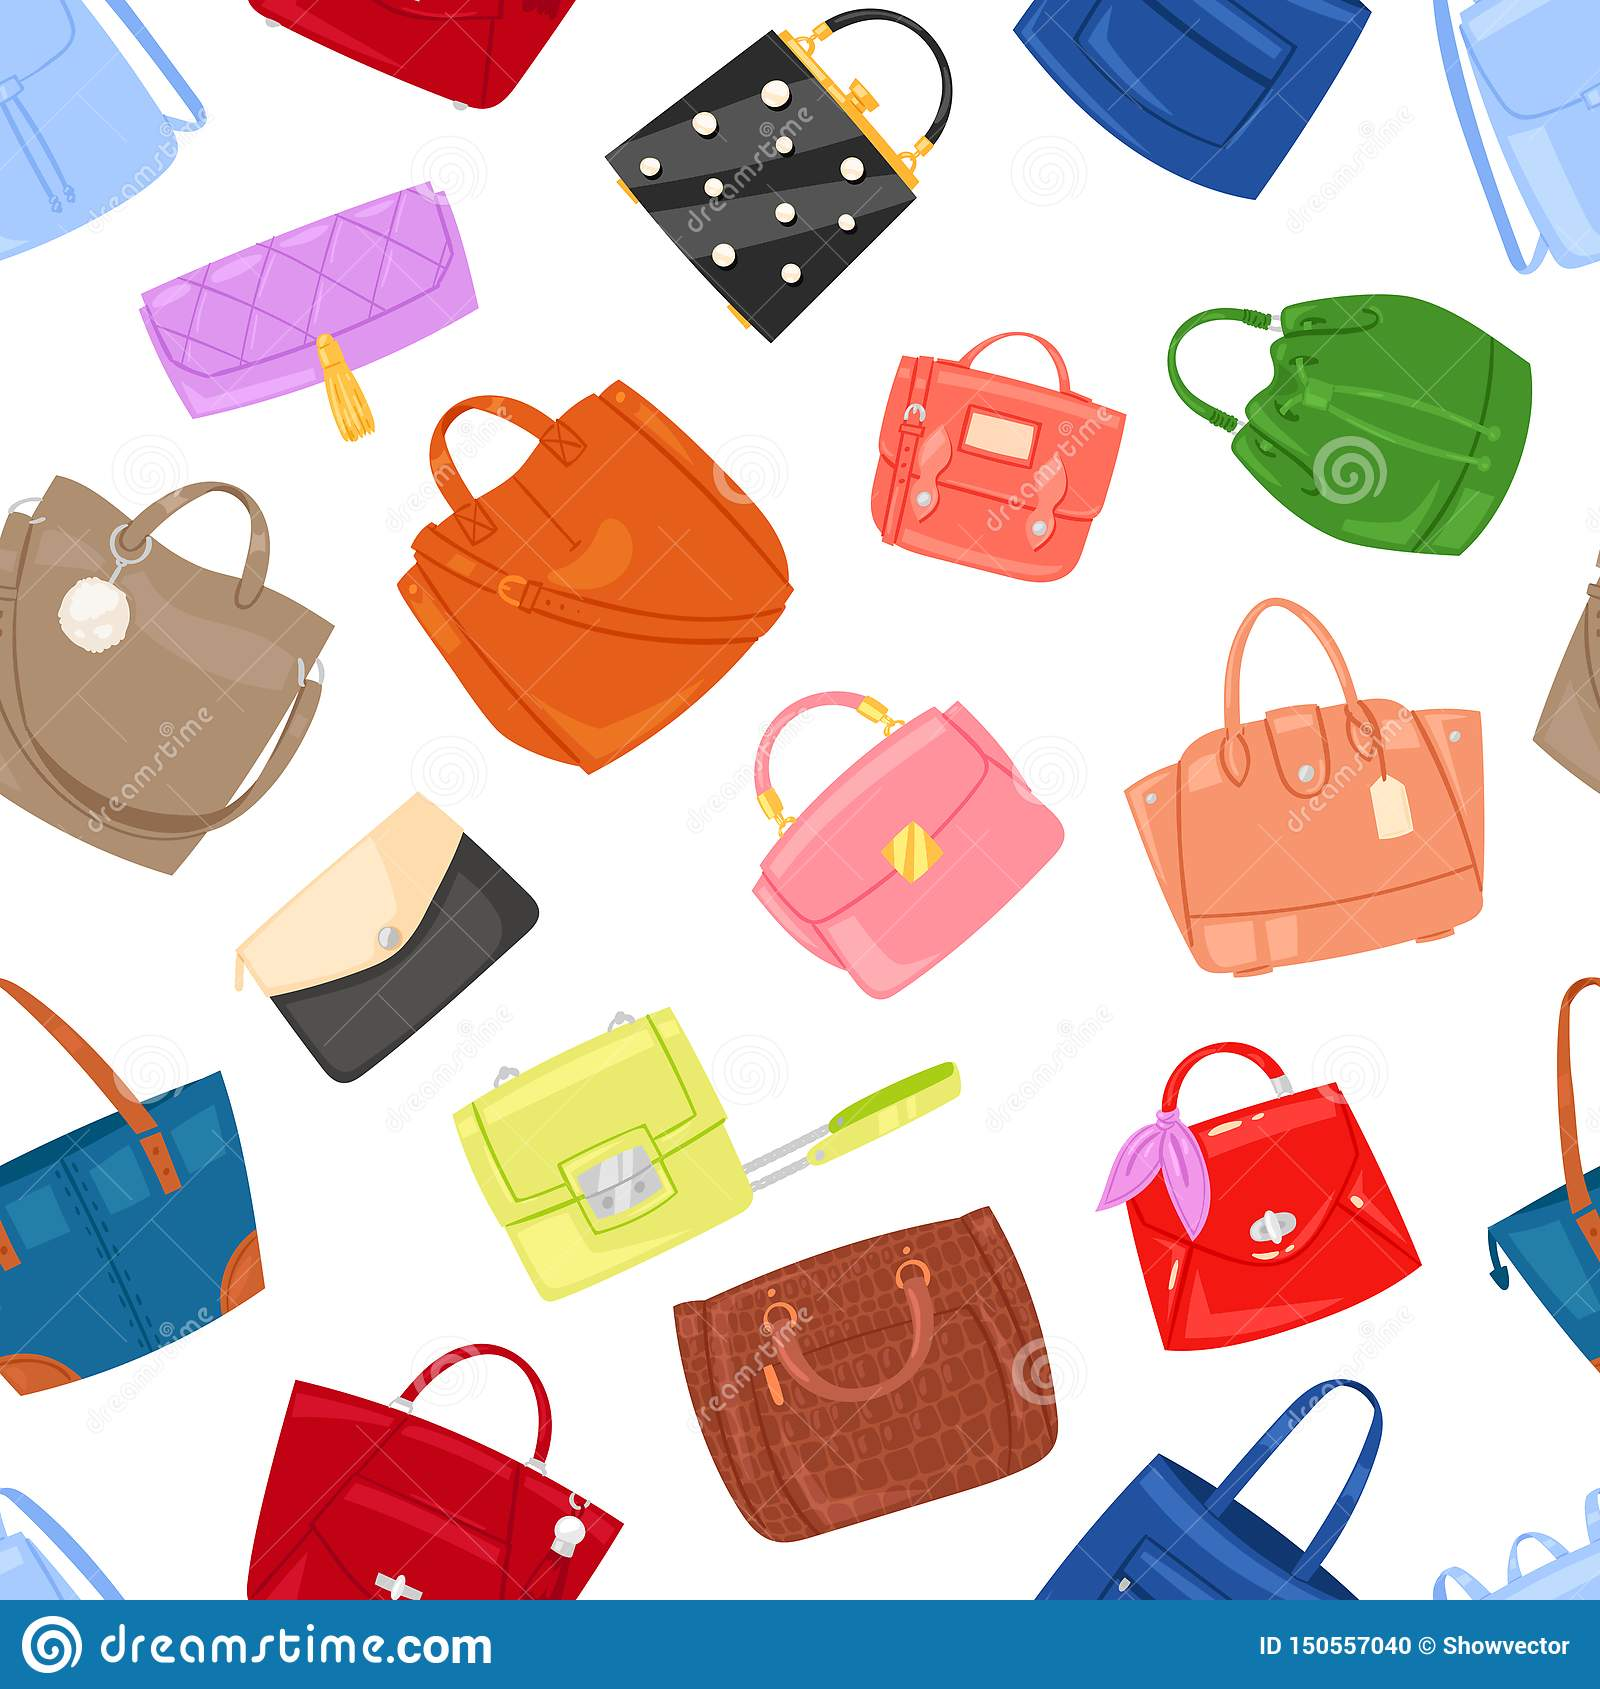 Woman bag vector girls handbag or purse and shopping-bag or clutch from fashion store illustration baggy set of shoppers